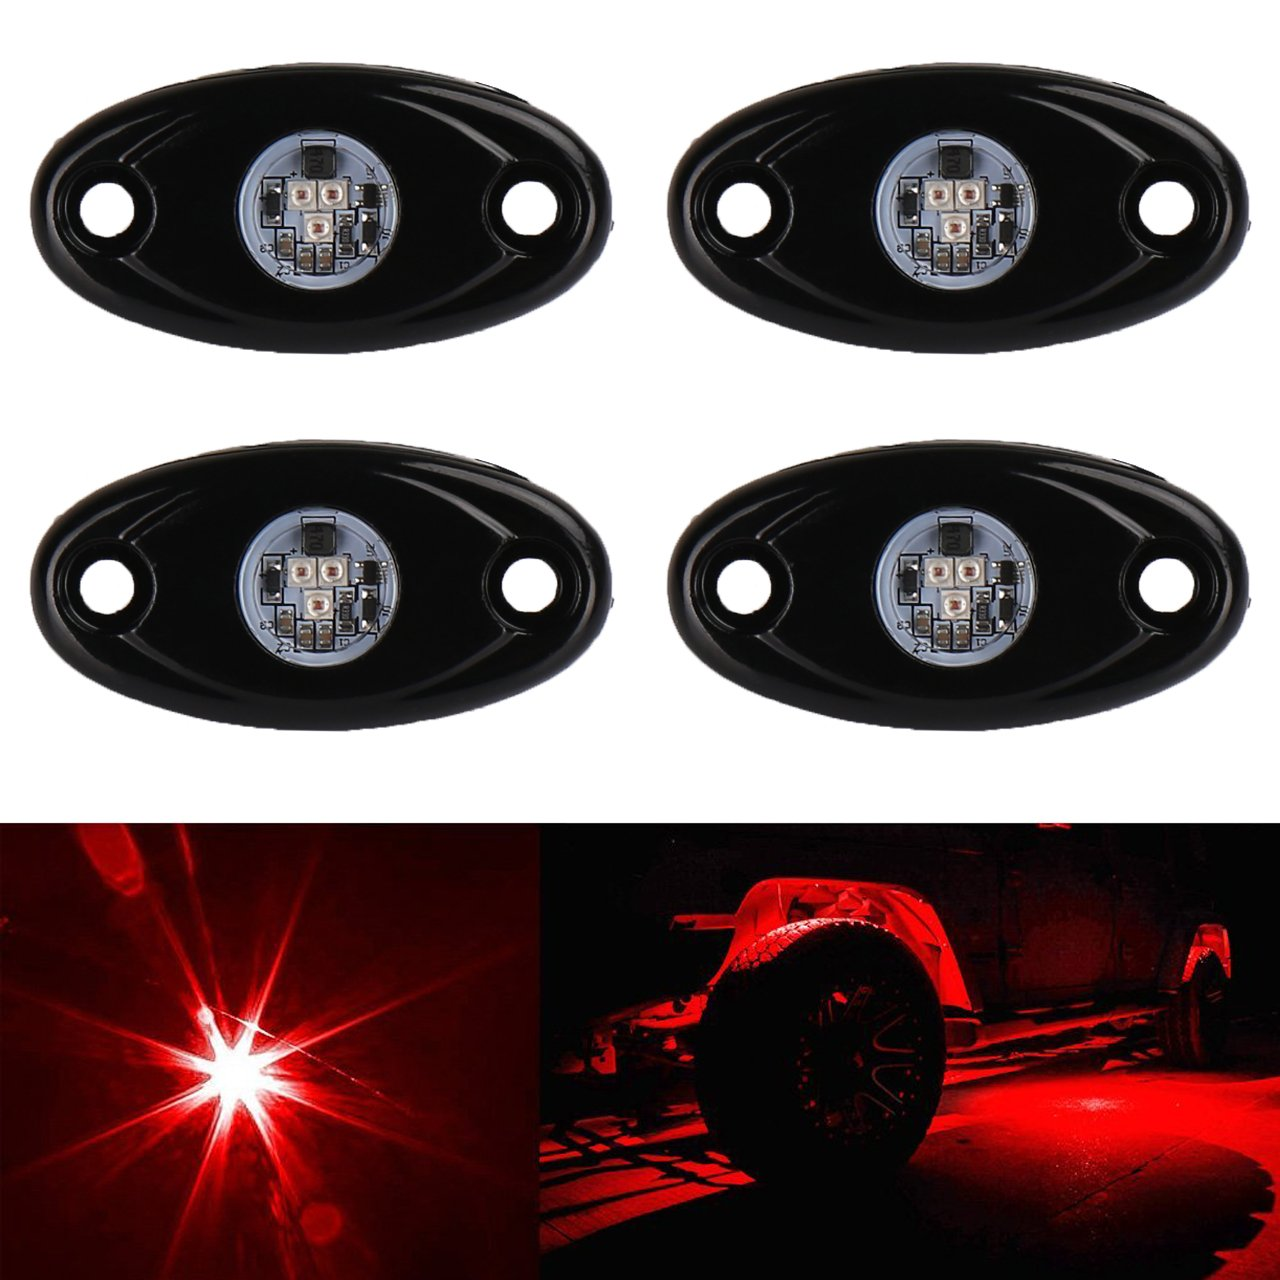 KaTur 4 Pods LED Rock Lights Kit Waterproof Underglow LED Neon Trail Rig Lights for Jeep Truck ATV UTV Baja Raptor Offroad Boat Trail Rig Lamp Underbody Glow -Red